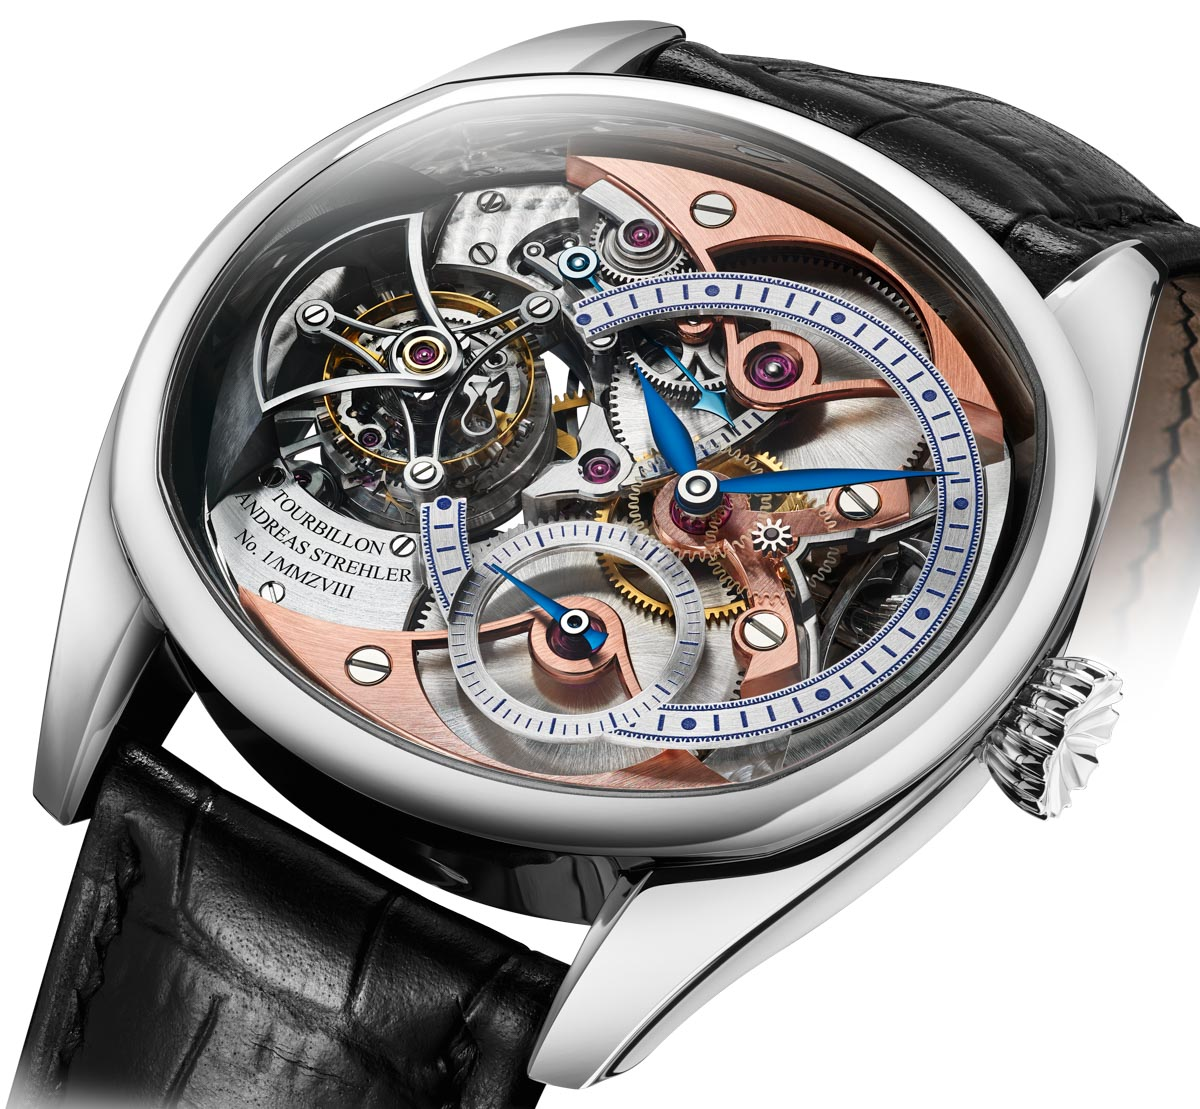 andreas-strehler-transaxle-remontoir-tourbillon-watch-12.jpg